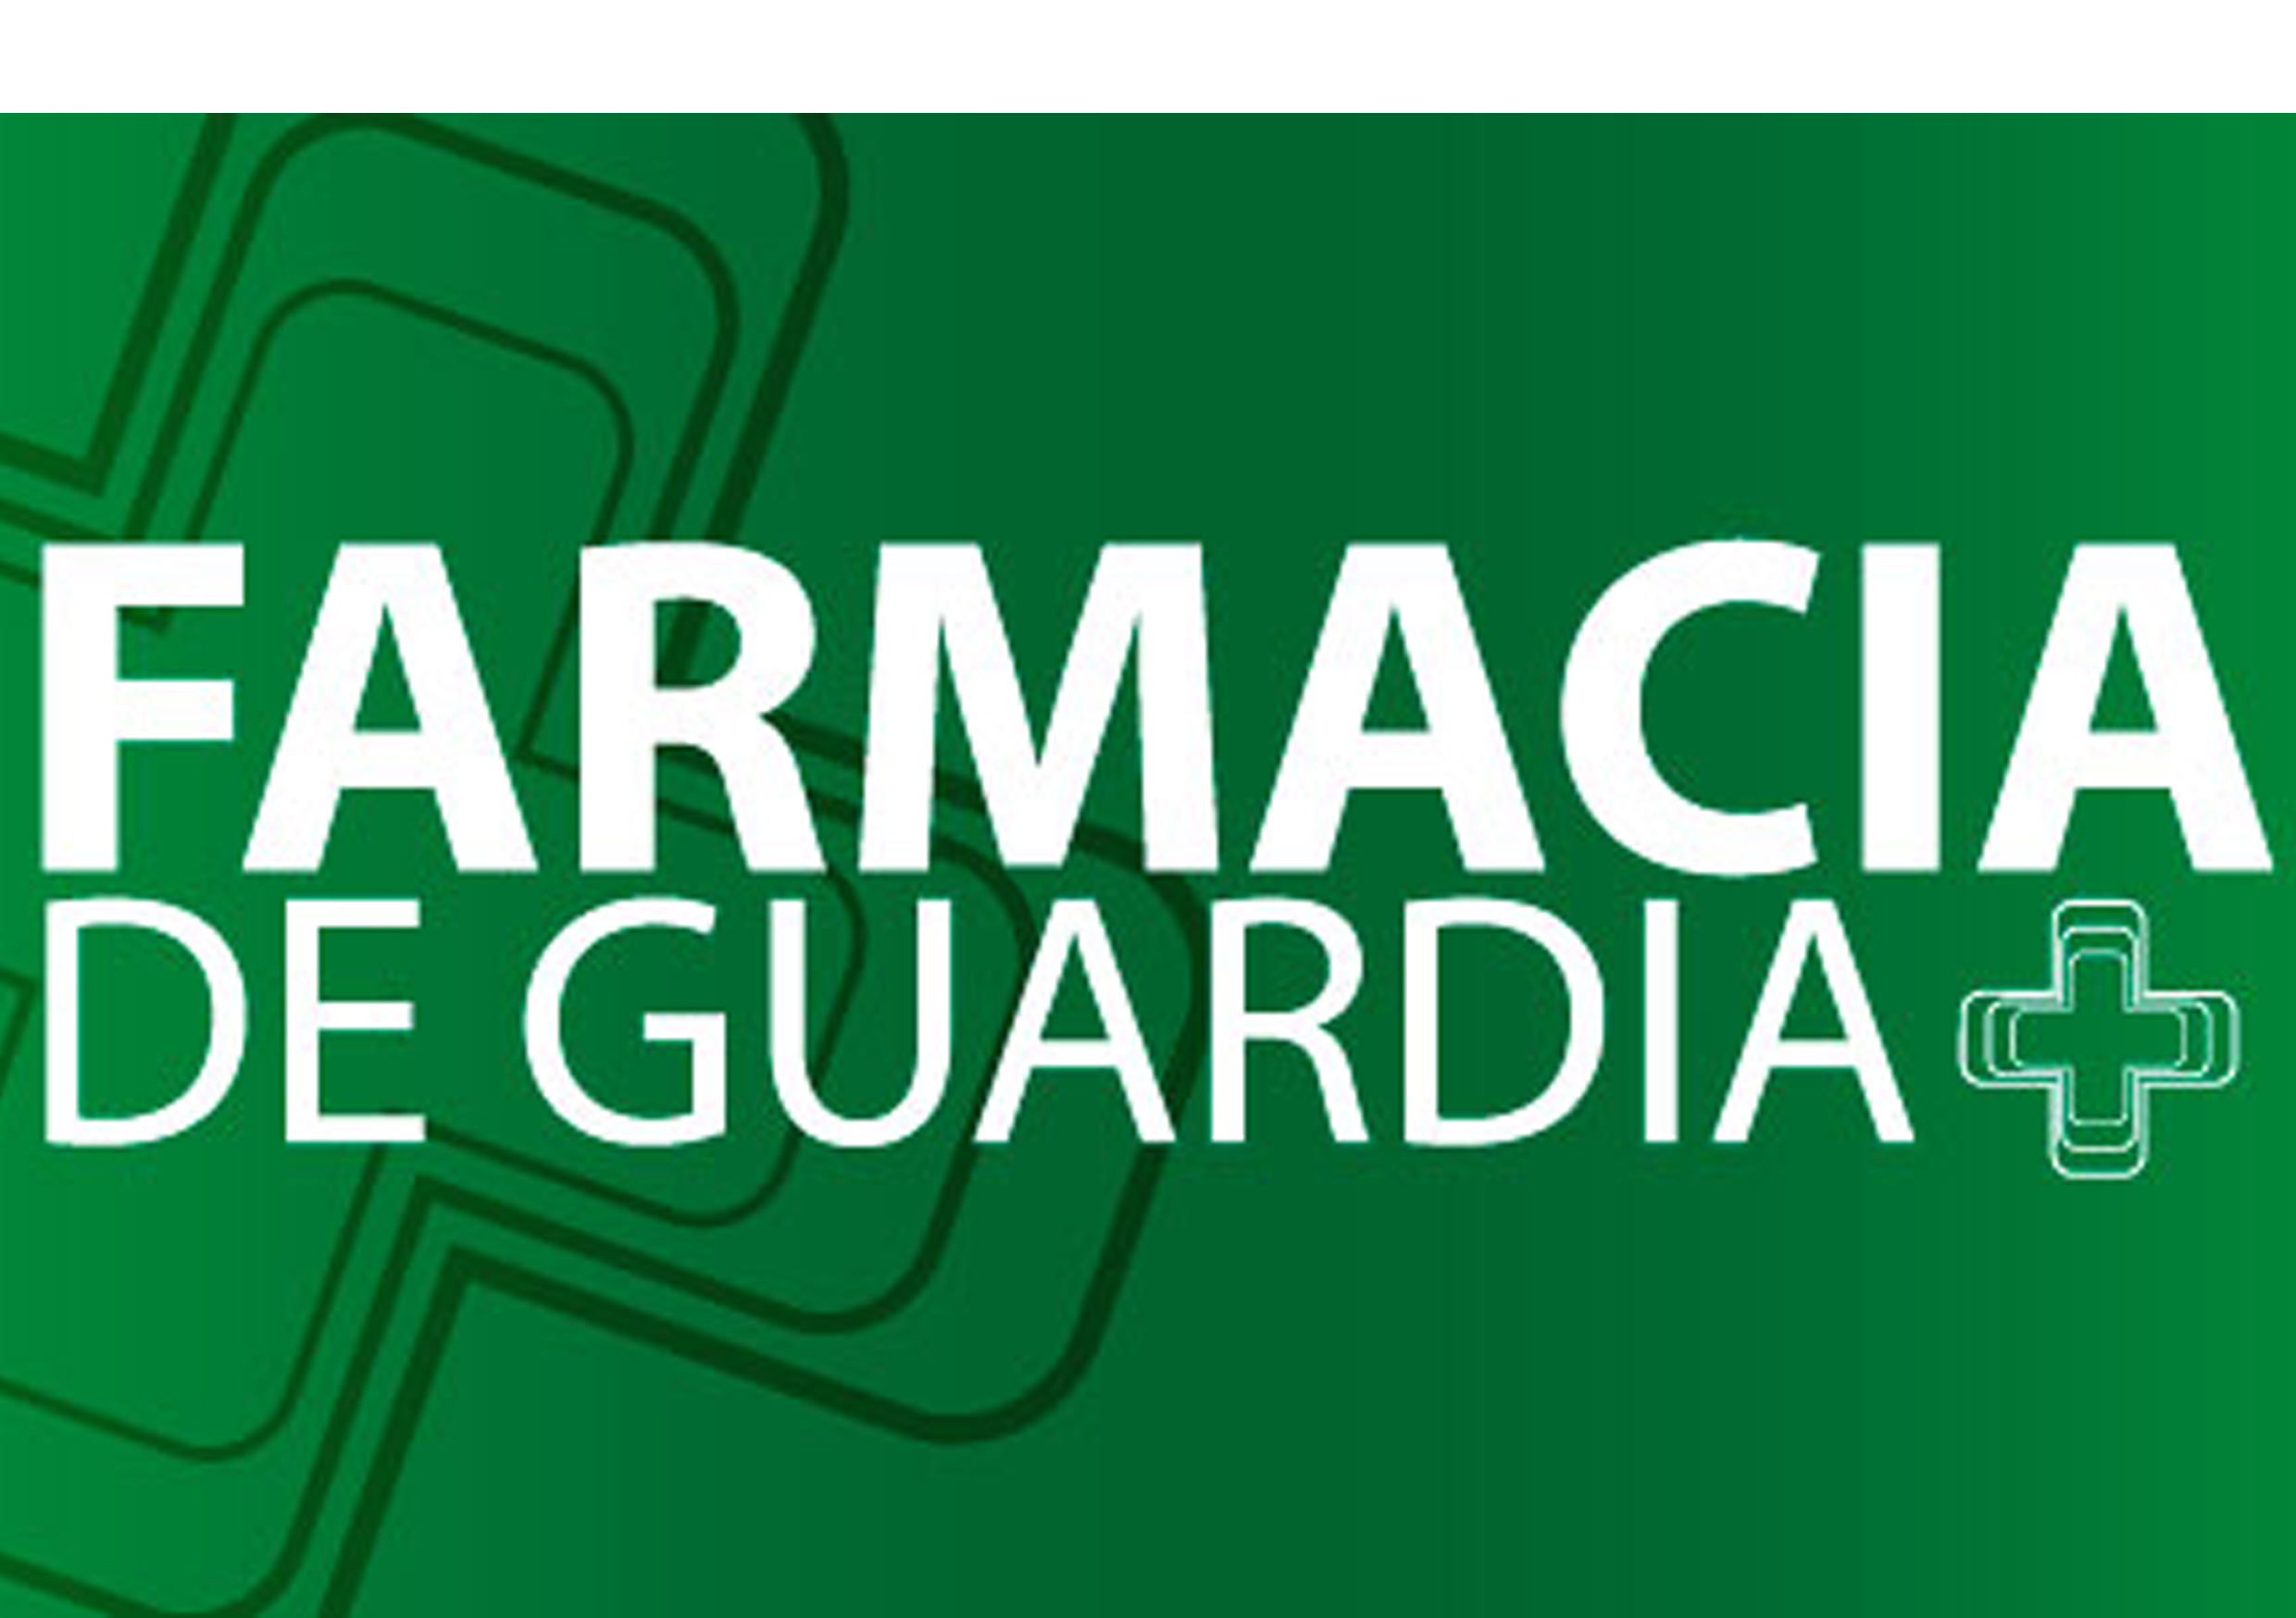 Farmacia de Guardia . Sale del sitio www.librilla.es